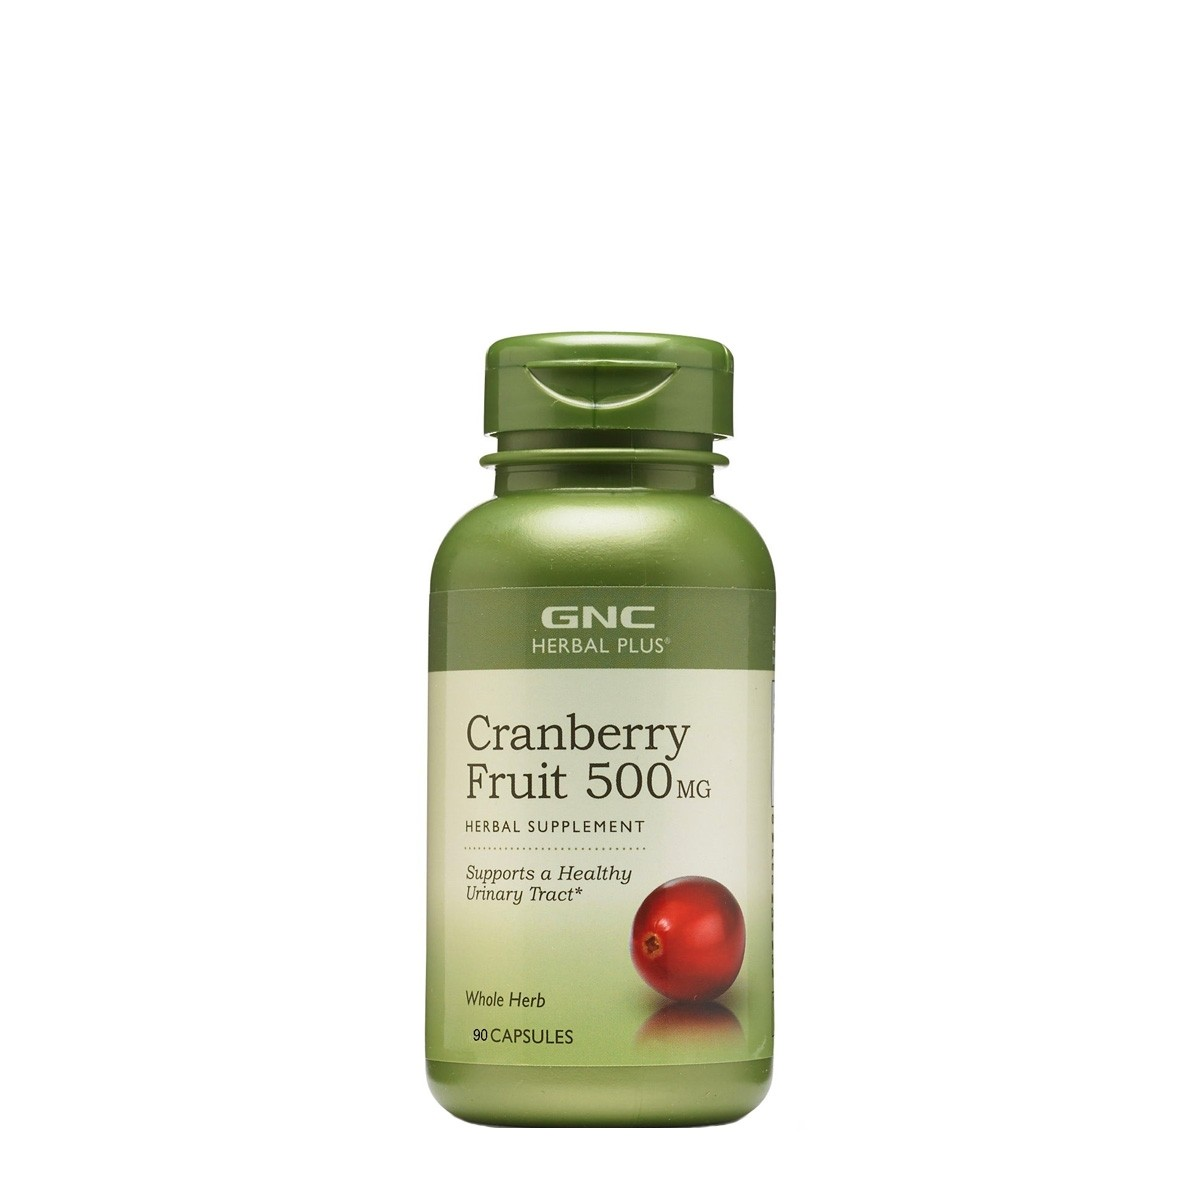 GNC Herbal Plus® Cranberry Fruit 500 mg, Extract din Fruct de Merisor, 90 cps